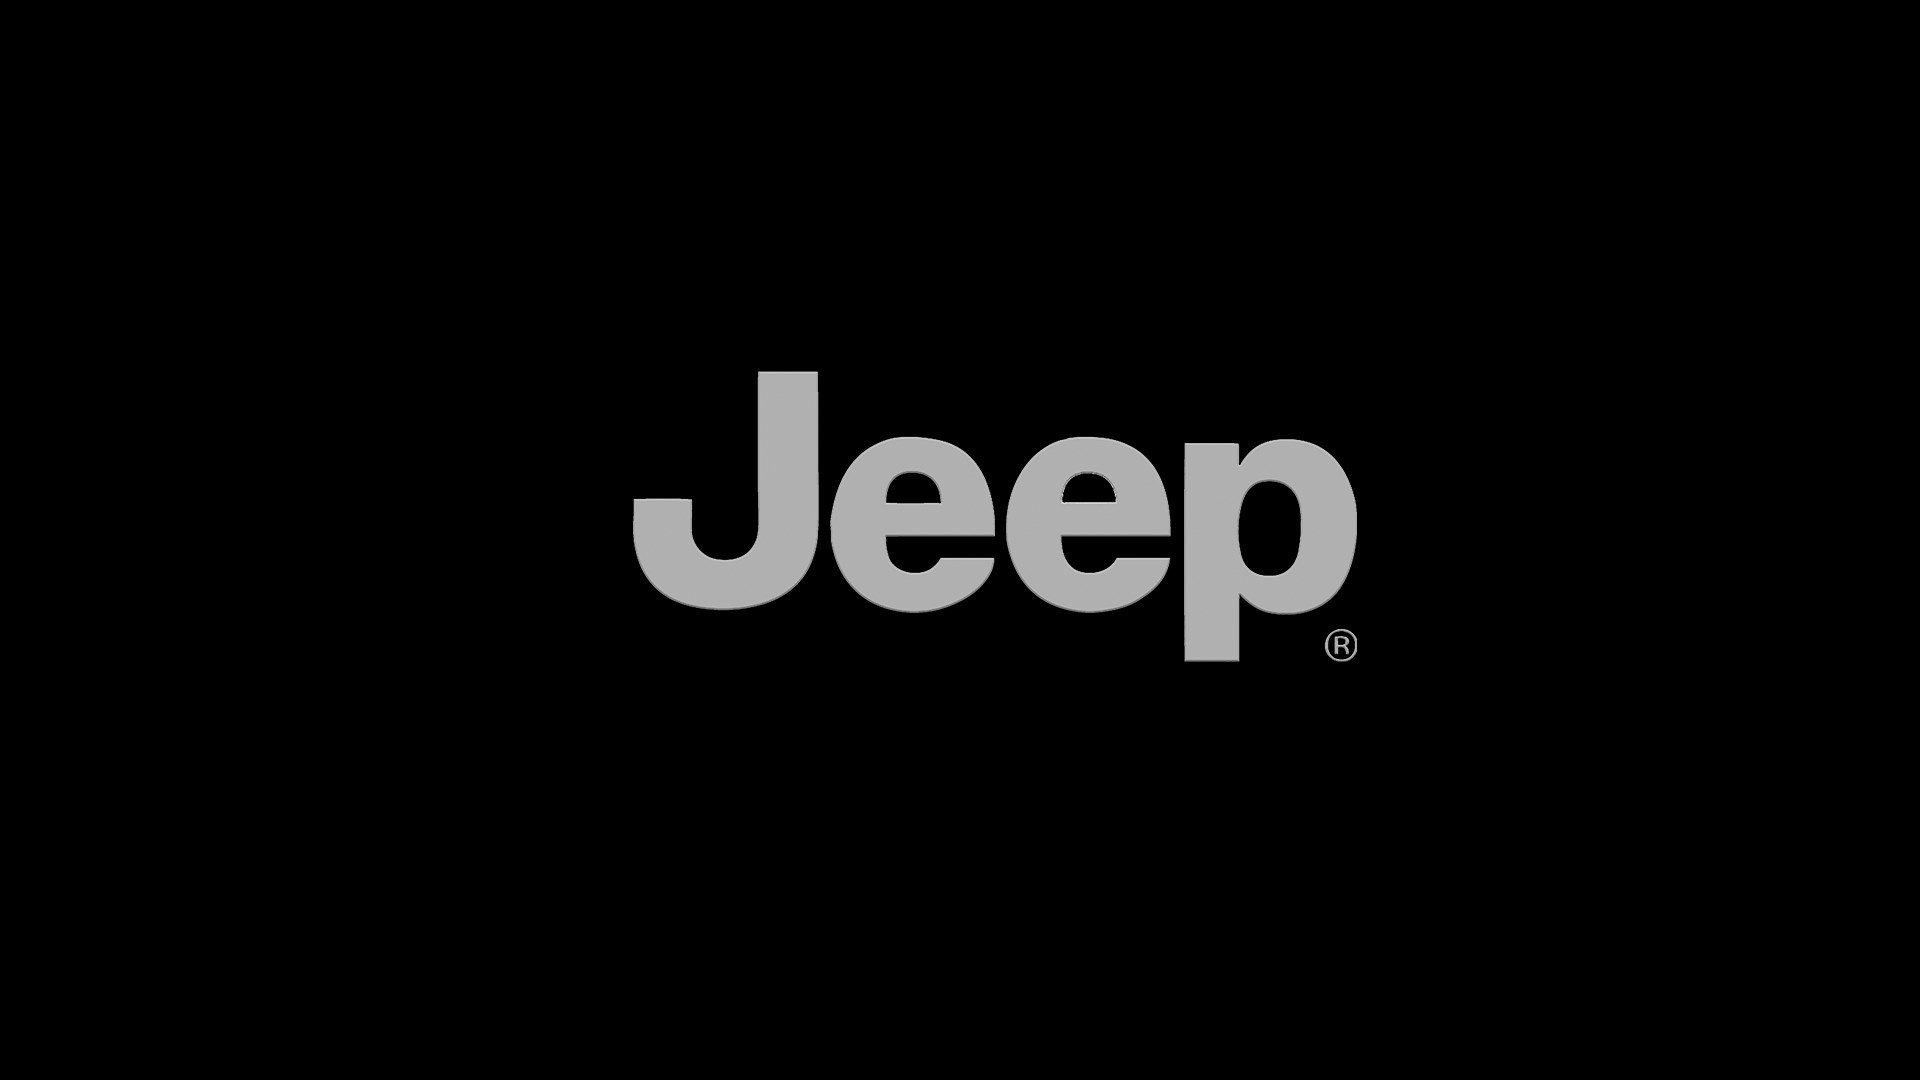 Widescreen Car Wallpaper Jeep Logo Wallpaper 183 ①